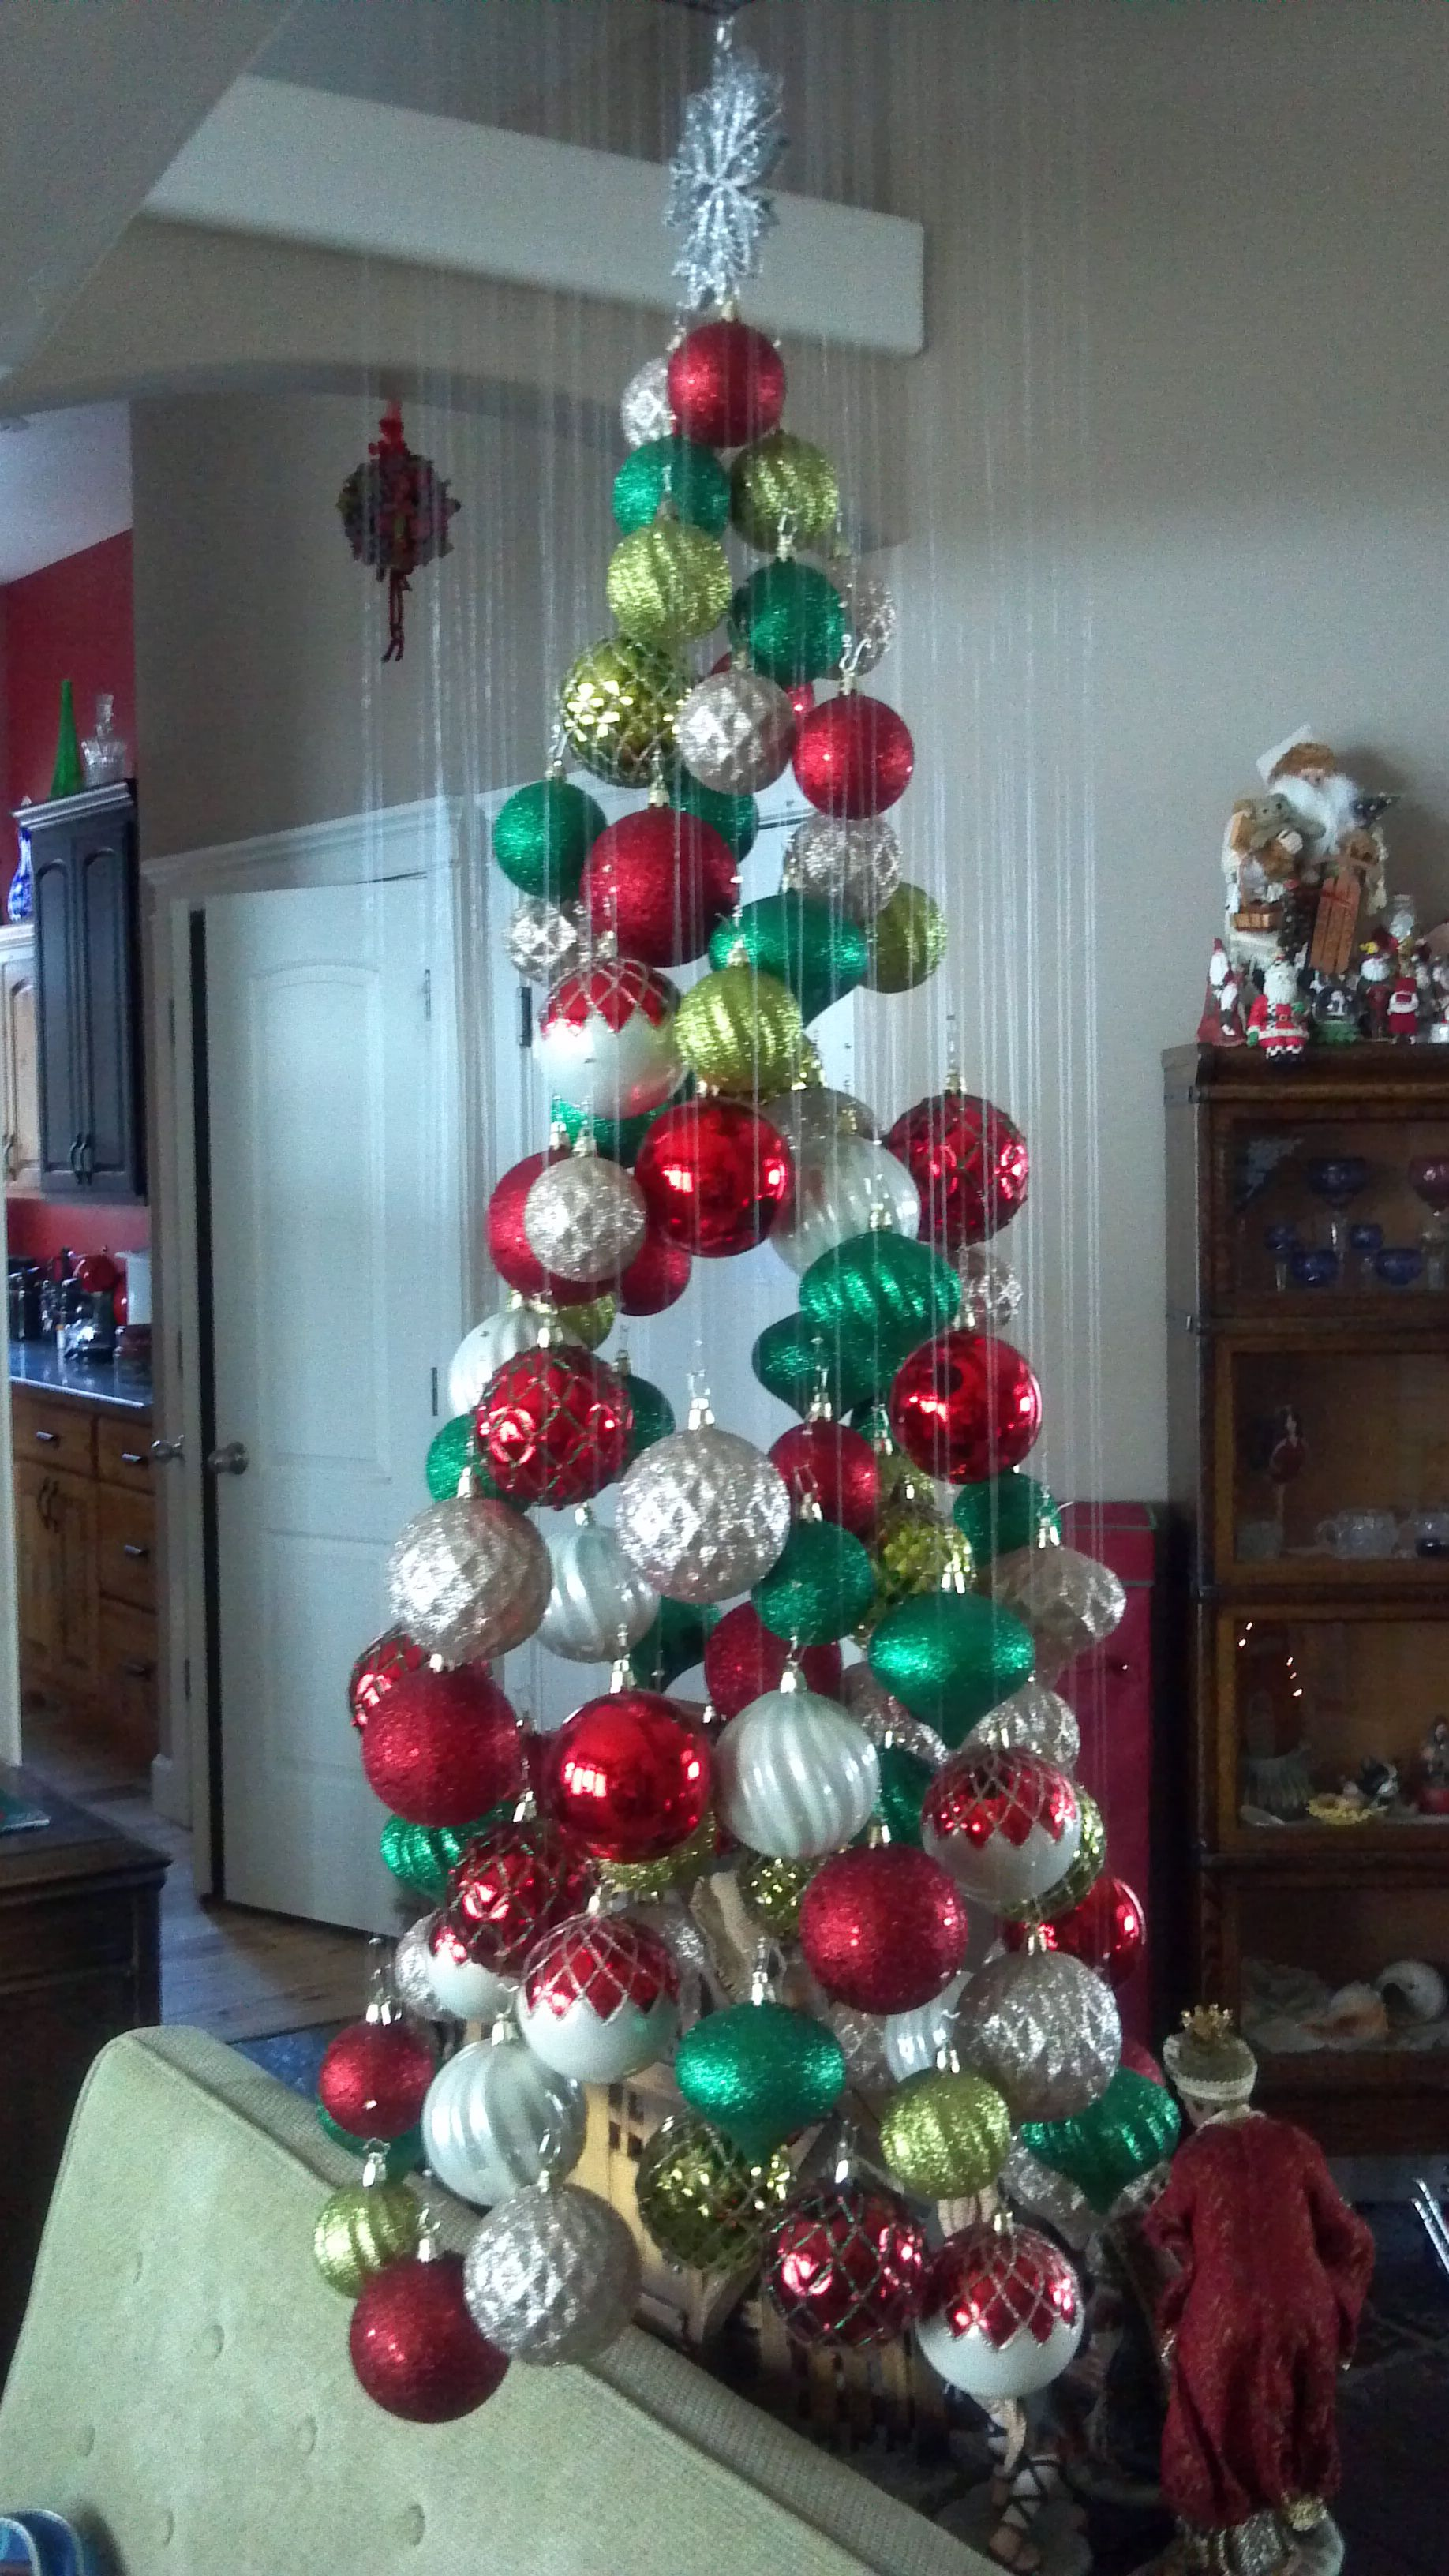 My version of the Christmas Tree Mobile